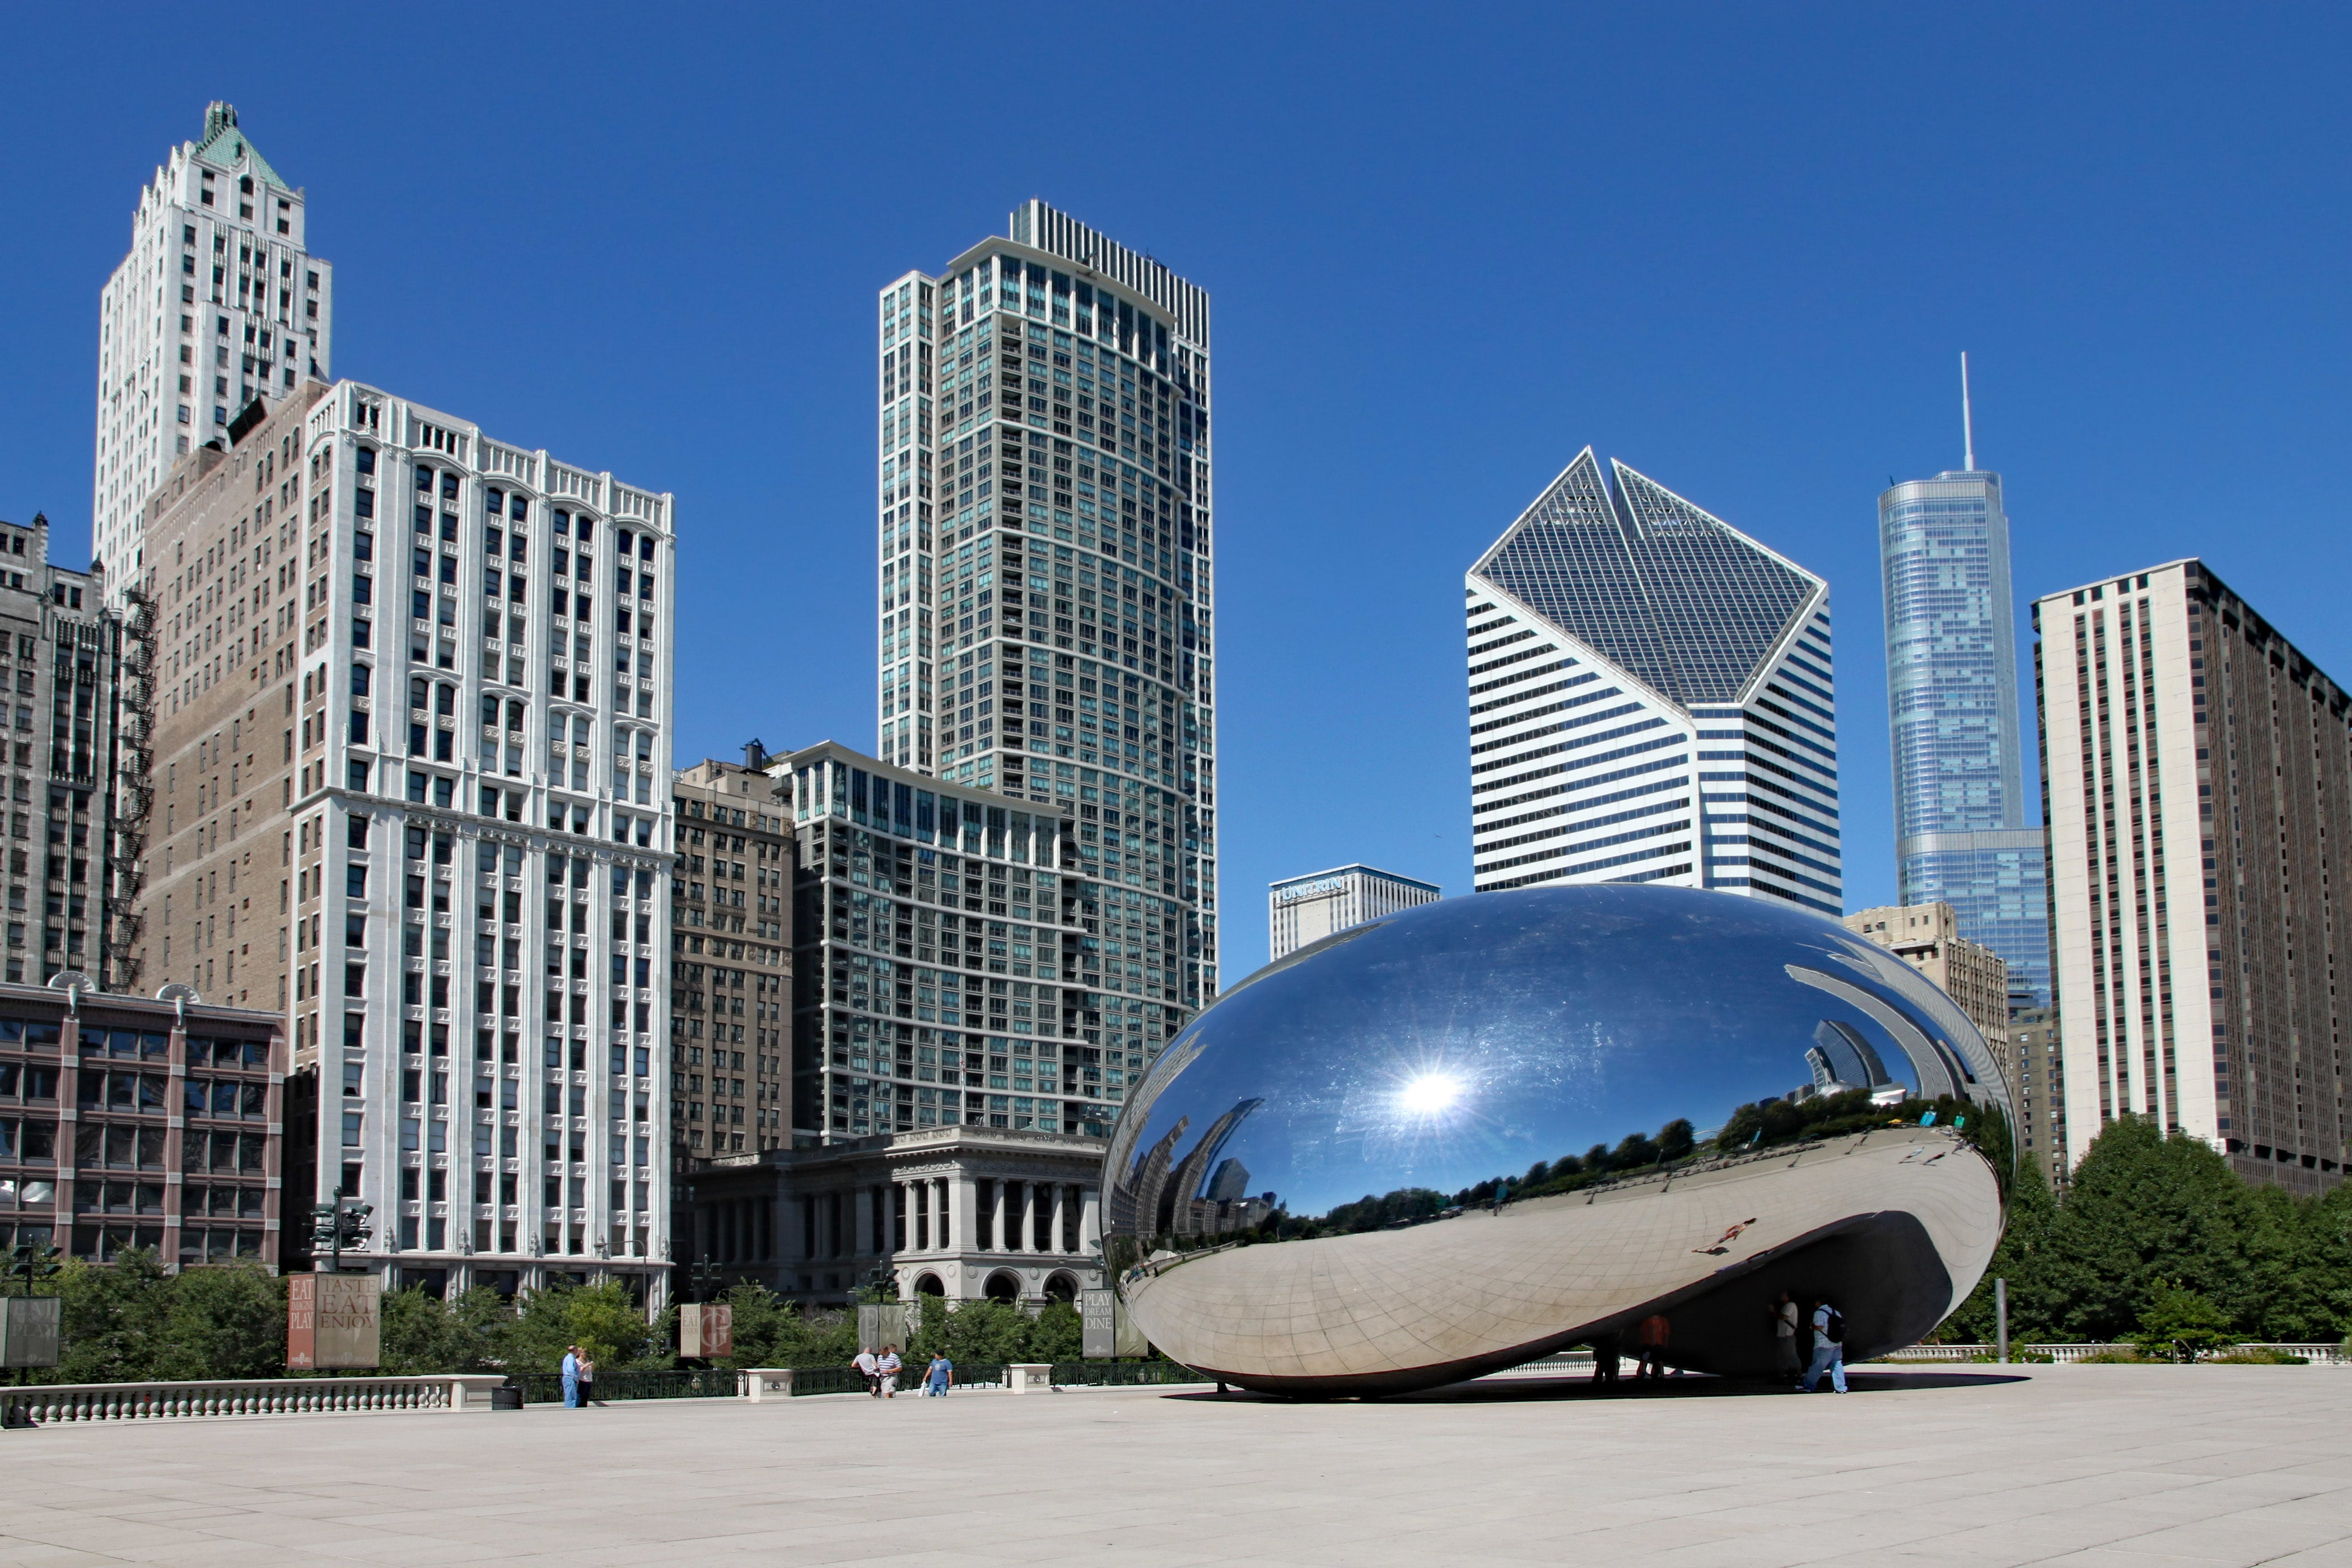 Moving to Chicago? Here's what you need to know